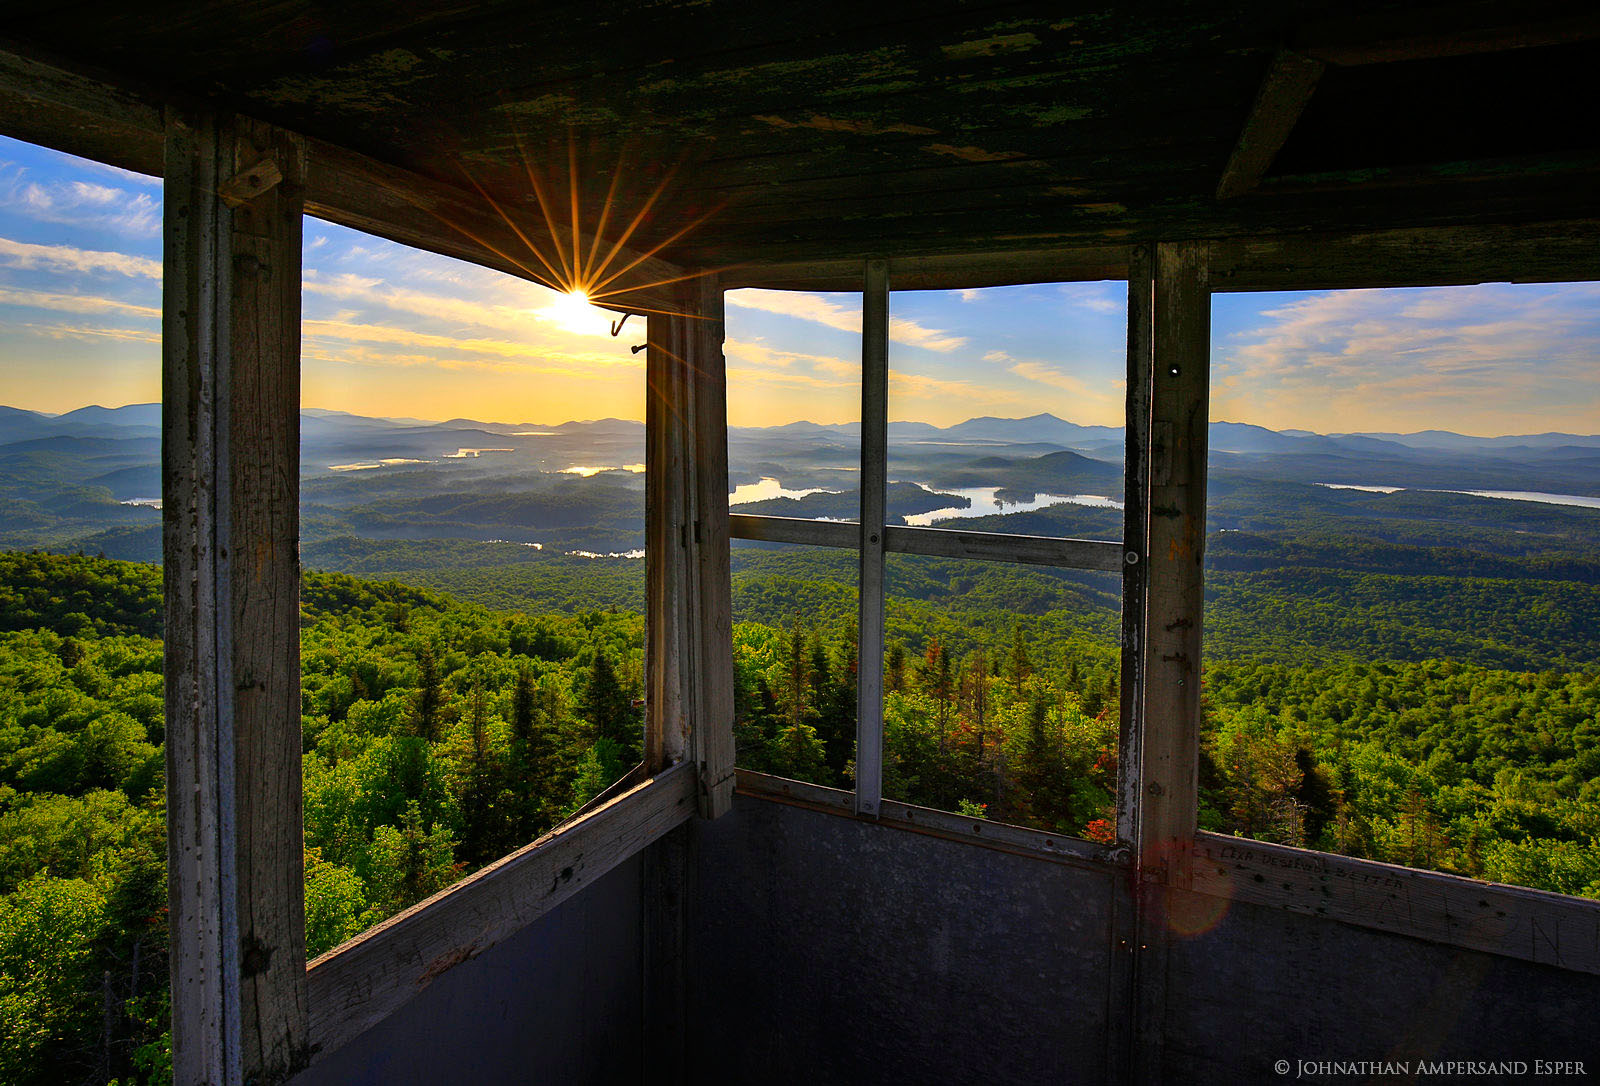 St Regis Mt Firetower Cabin Window View Of Summer Morning